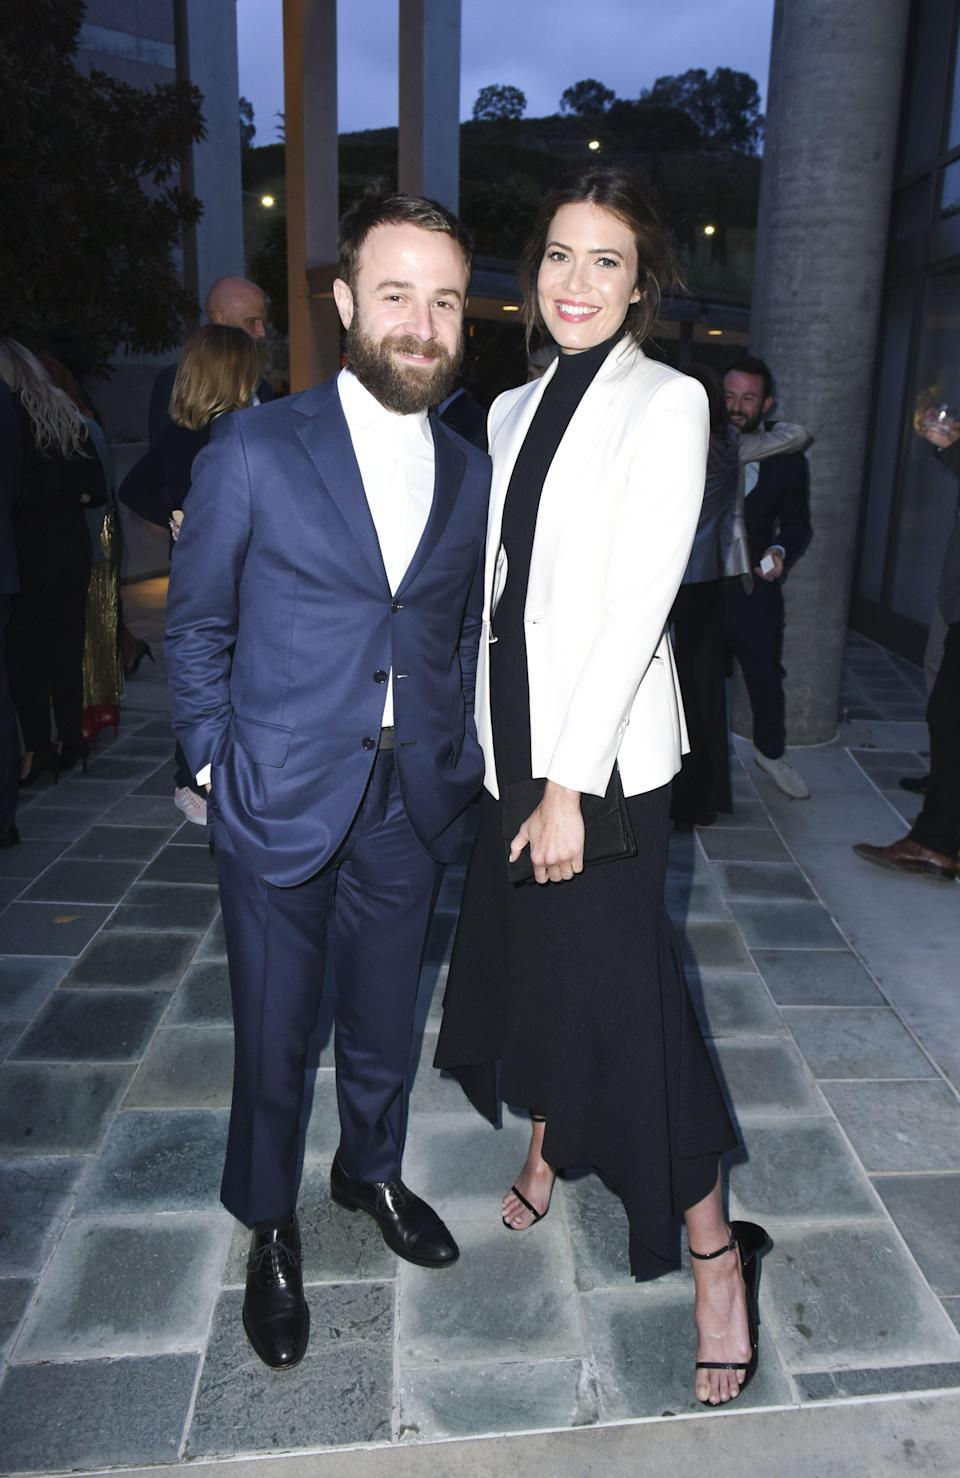 "<p>Mandy Moore is a officially a mom! The <em>This is Us </em>star and her husband, Taylor Goldsmith, welcomed their first child into the world on Feb. 20—and revealed they chose their little one's name for the most special reasons. <br> <br>The actress announced her son's arrival by sharing a photo of the newborn on Instagram, zoomed in on his pale blue onesie to obscure his face. ""Gus is here 💙💙💙💙,"" Mandy wrote in the caption. ""Our sweet boy, August Harrison Goldsmith. He was punctual and arrived right on his due date, much to the delight of his parents. We were prepared to fall in love in all sorts of brand new ways, but it goes beyond anything we could have ever imagined.""</p><p>ICYDK, the new parents have been married since 2018. The<em> Because I Said So</em> actress and musician tied the knot in a private ceremony in front of close friends and family on Nov. 18, <a href=""https://www.eonline.com/news/932541/inside-mandy-moore-s-private-wedding-ceremony-to-musician-taylor-goldsmith"" rel=""nofollow noopener"" target=""_blank"" data-ylk=""slk:E!"" class=""link rapid-noclick-resp""><em>E!</em> </a>reported. According to a source, it was ""an intimate backyard wedding at Mandy's home that started just after sundown on Sunday evening."" Apparently, the wedding vibe was ""very boho,"" which included ""rugs on the floor surrounding the altar. The flower arrangements were beautiful with lots of large feathers."" Mandy also wore a pastel pink wedding gown.<br></p><p>So...who exactly is Taylor Goldsmith again? Here's everything to know about Mandy's hubby and baby daddy, and their cute love story. </p>"